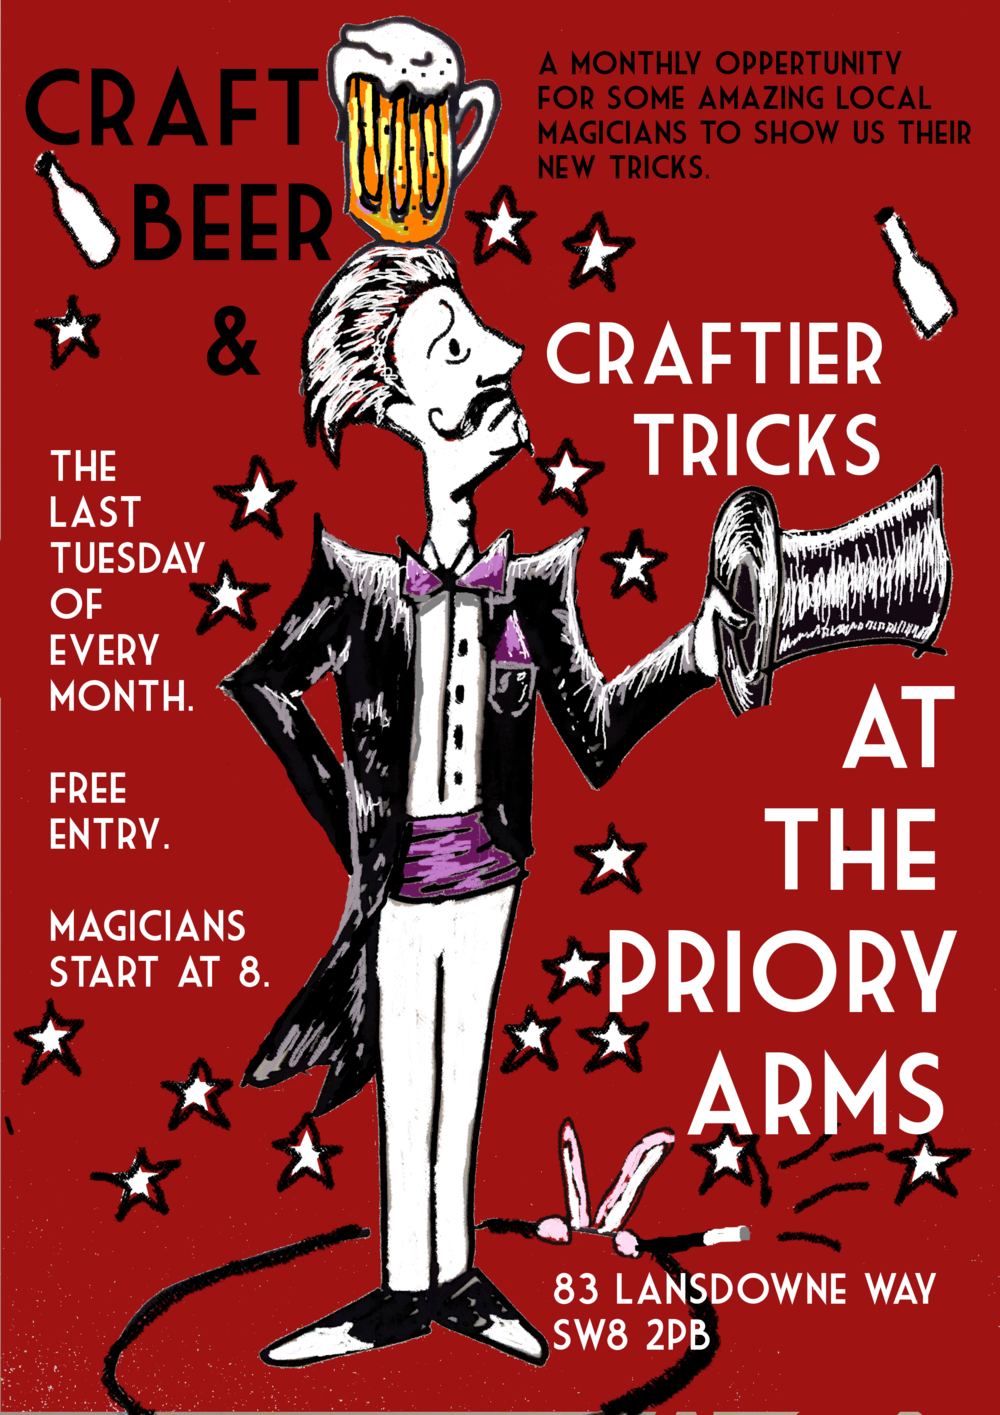 The Magic is back at the Priory once again for the last Tuesday of every month. If like us, you turn into a big kid in awe when you're shown a great trick, then what could be better than that and a good beer. A monthly opportunity for some amazing local Magicians to show us some new tricks! FREE ENTRY! CRAFT BEER & CRAFTIER TRICKS!